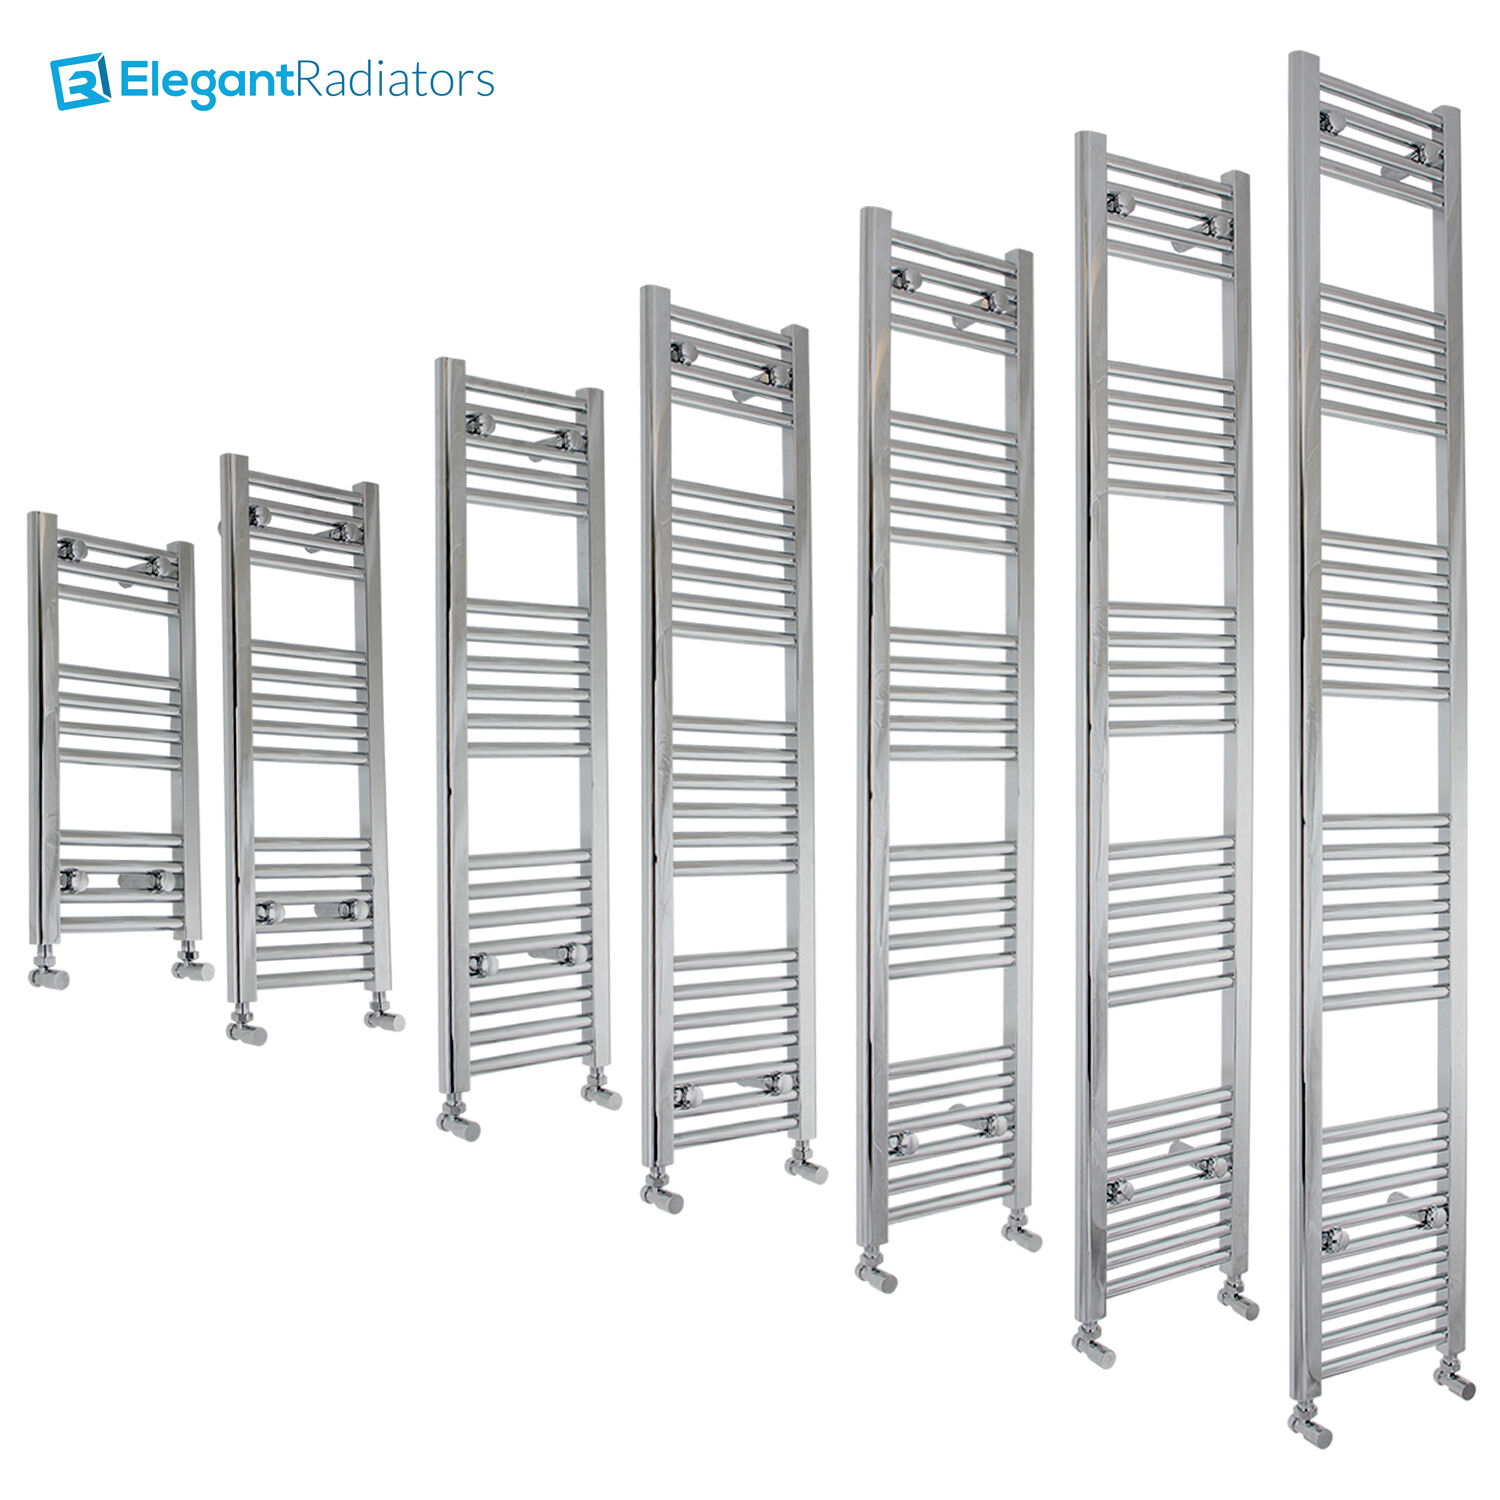 350 mm Wide Chrome Ladder Heated Towel Rail Radiator Designer Bathroom Straight